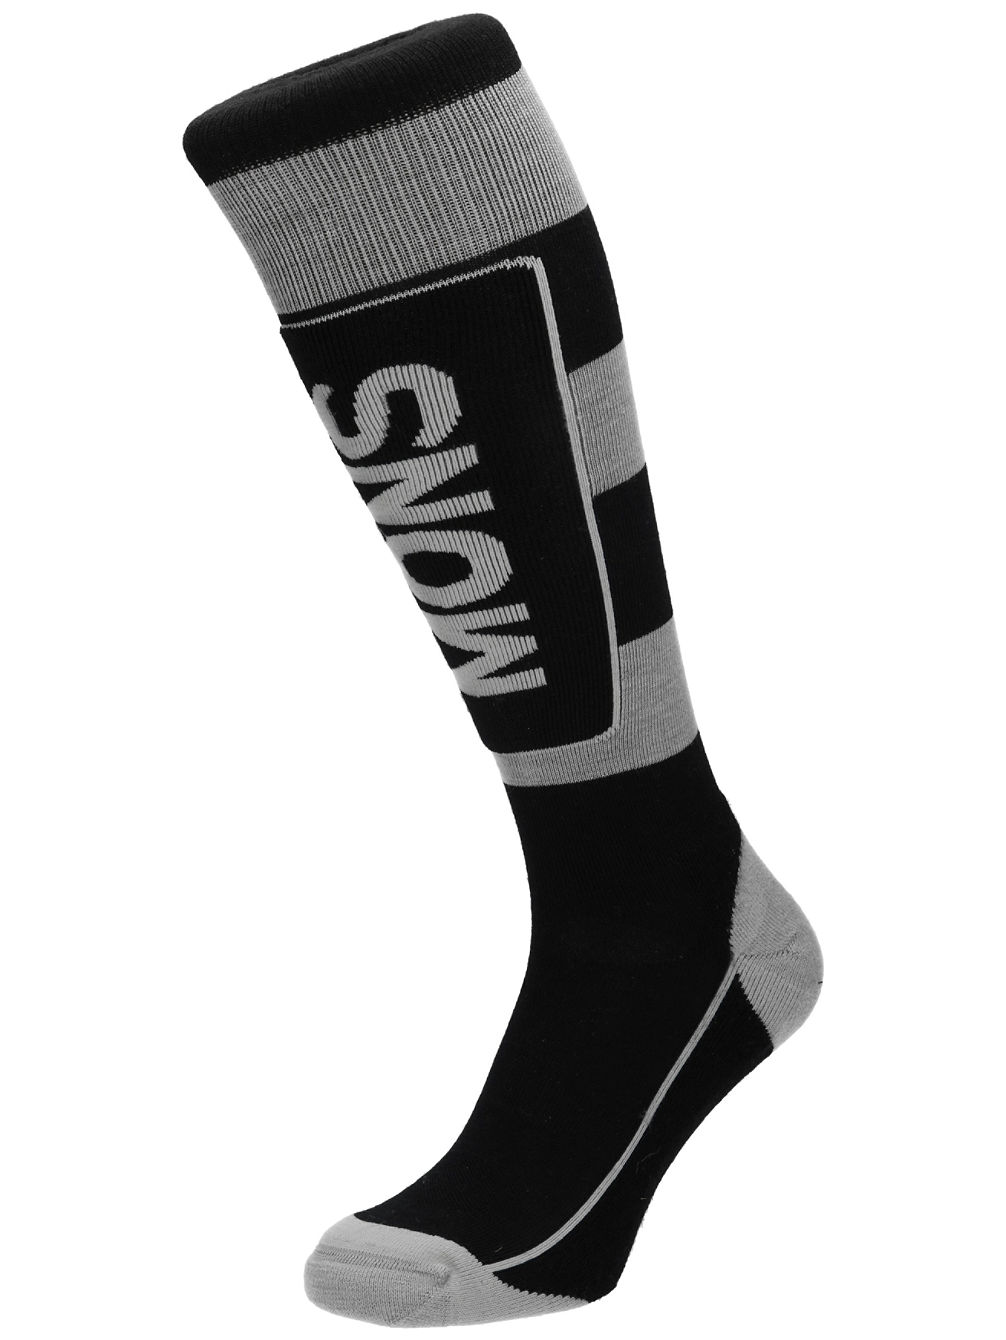 Merino Mons Tech Cushion Socks